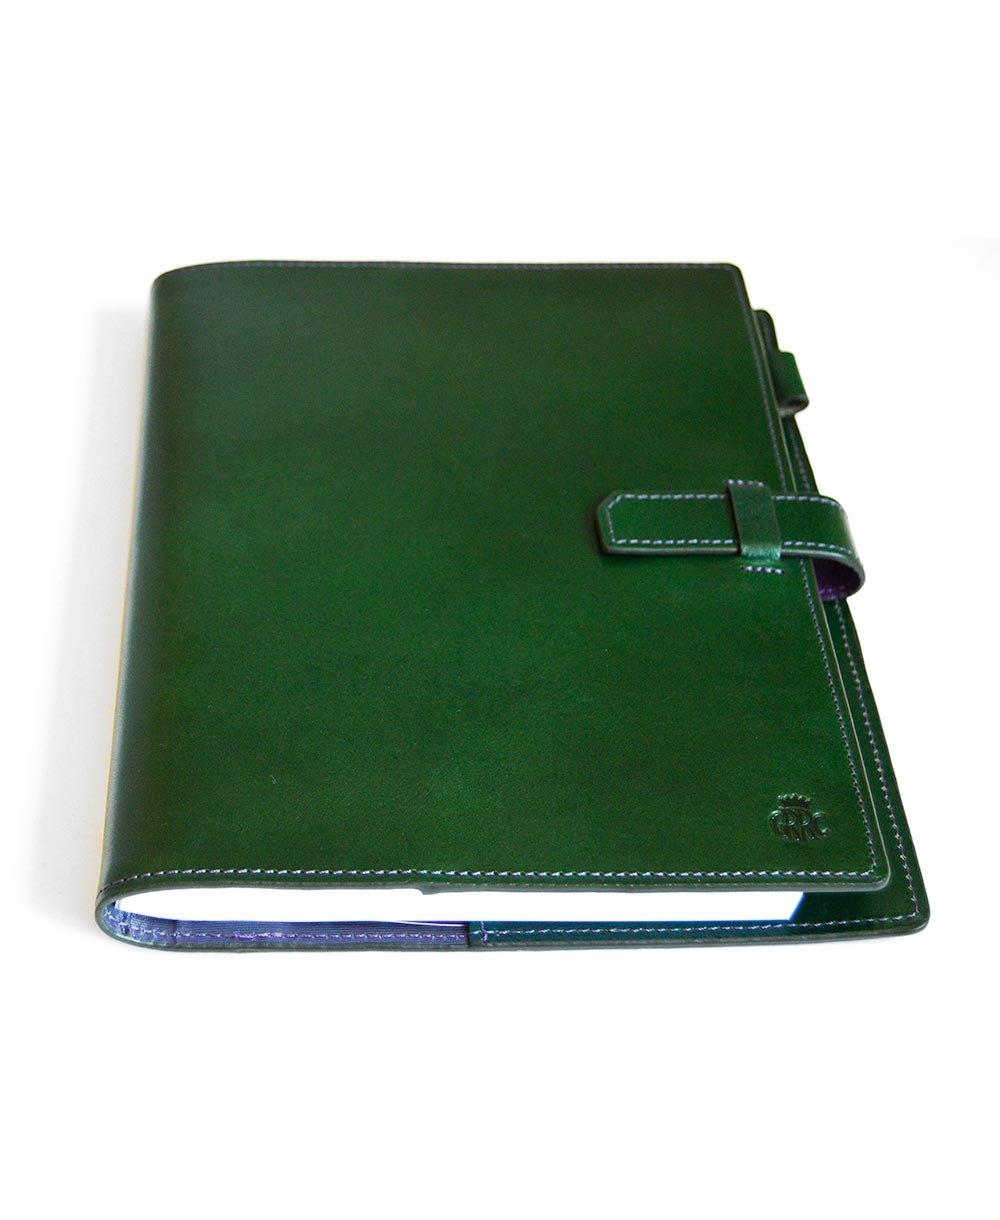 GRRC Leather A5 Journal in Green & Purple